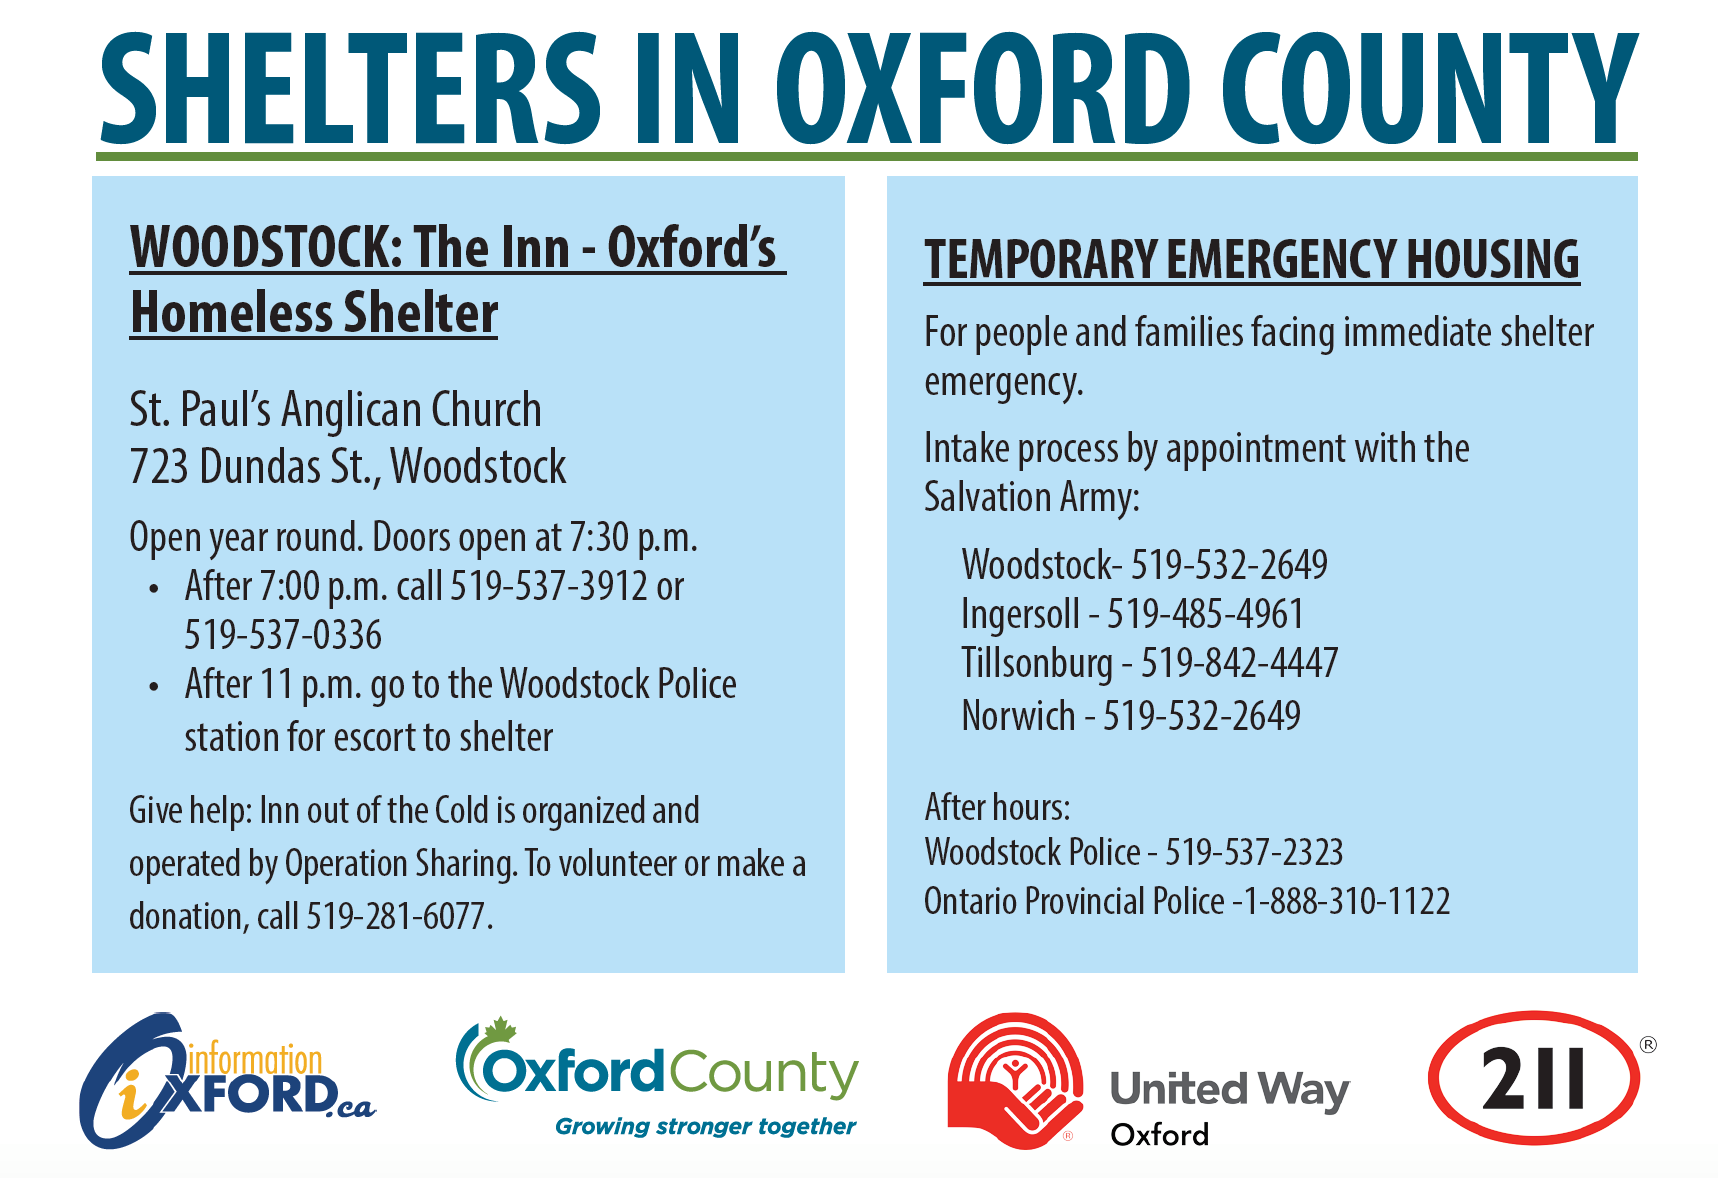 Information about shelters in Oxford County.